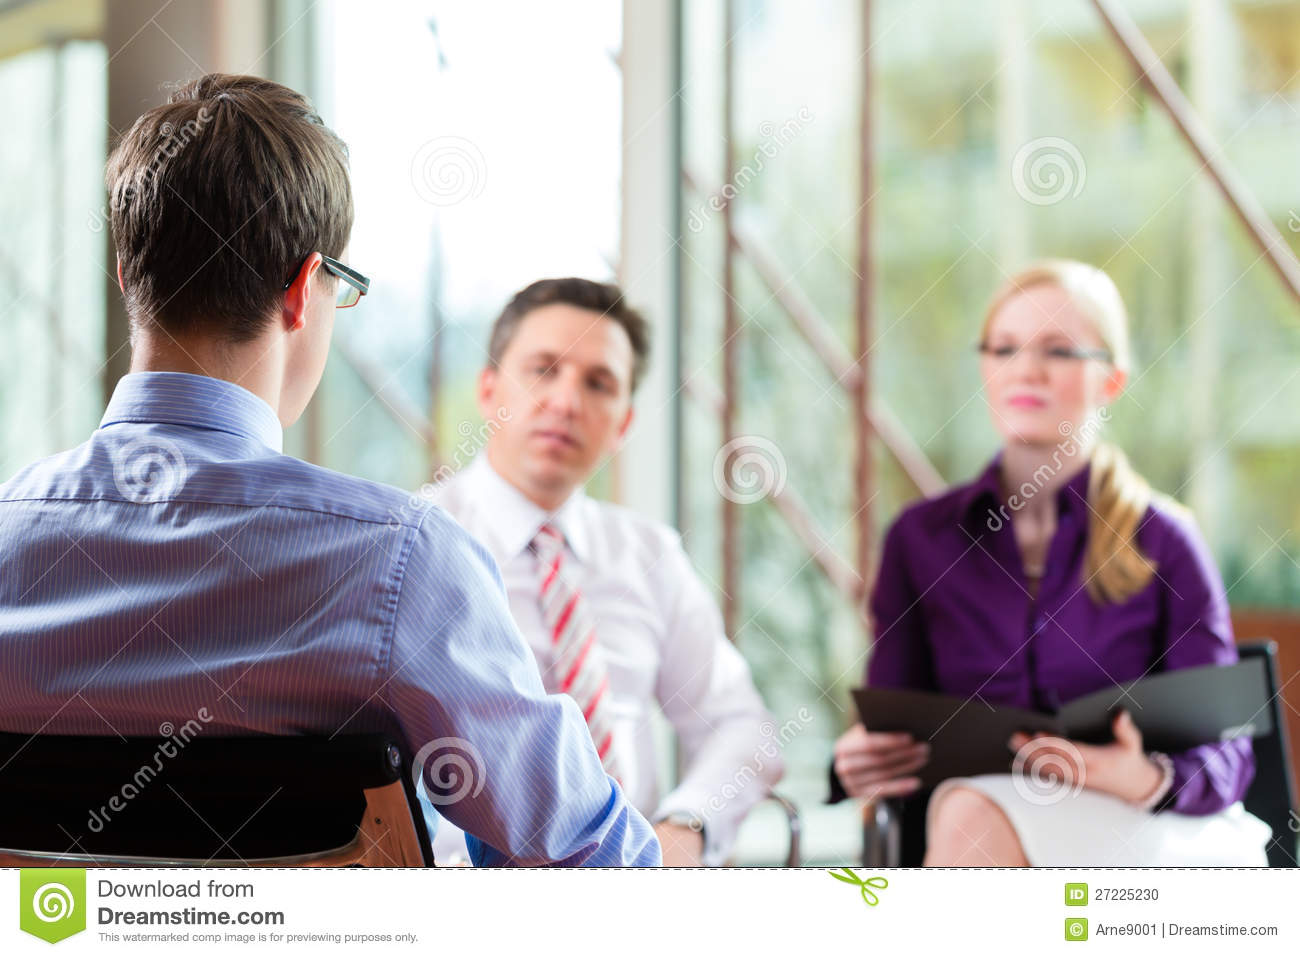 Man having an interview with manager